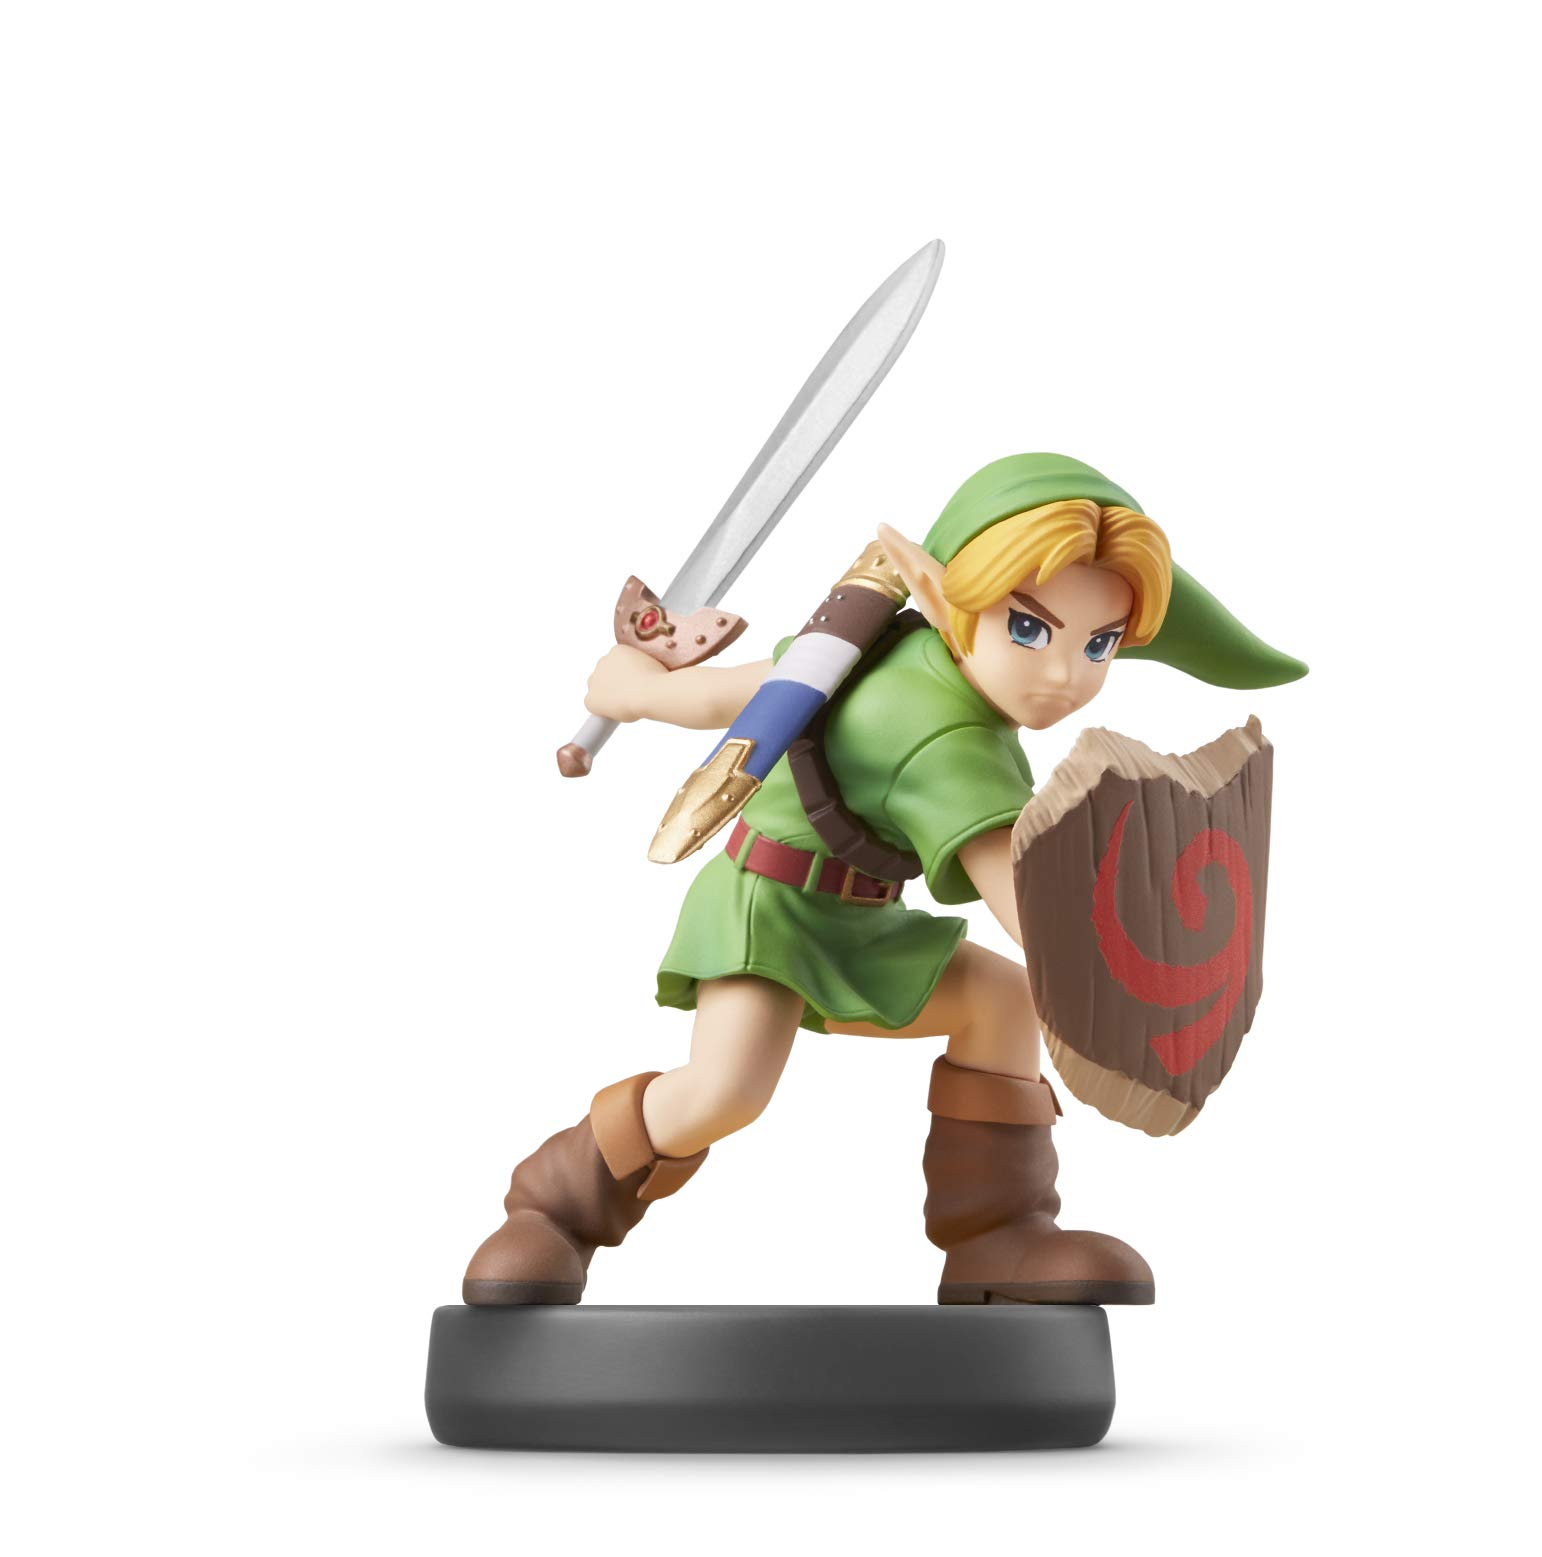 Check Out Young Link AmiiboProducts On Amazon!